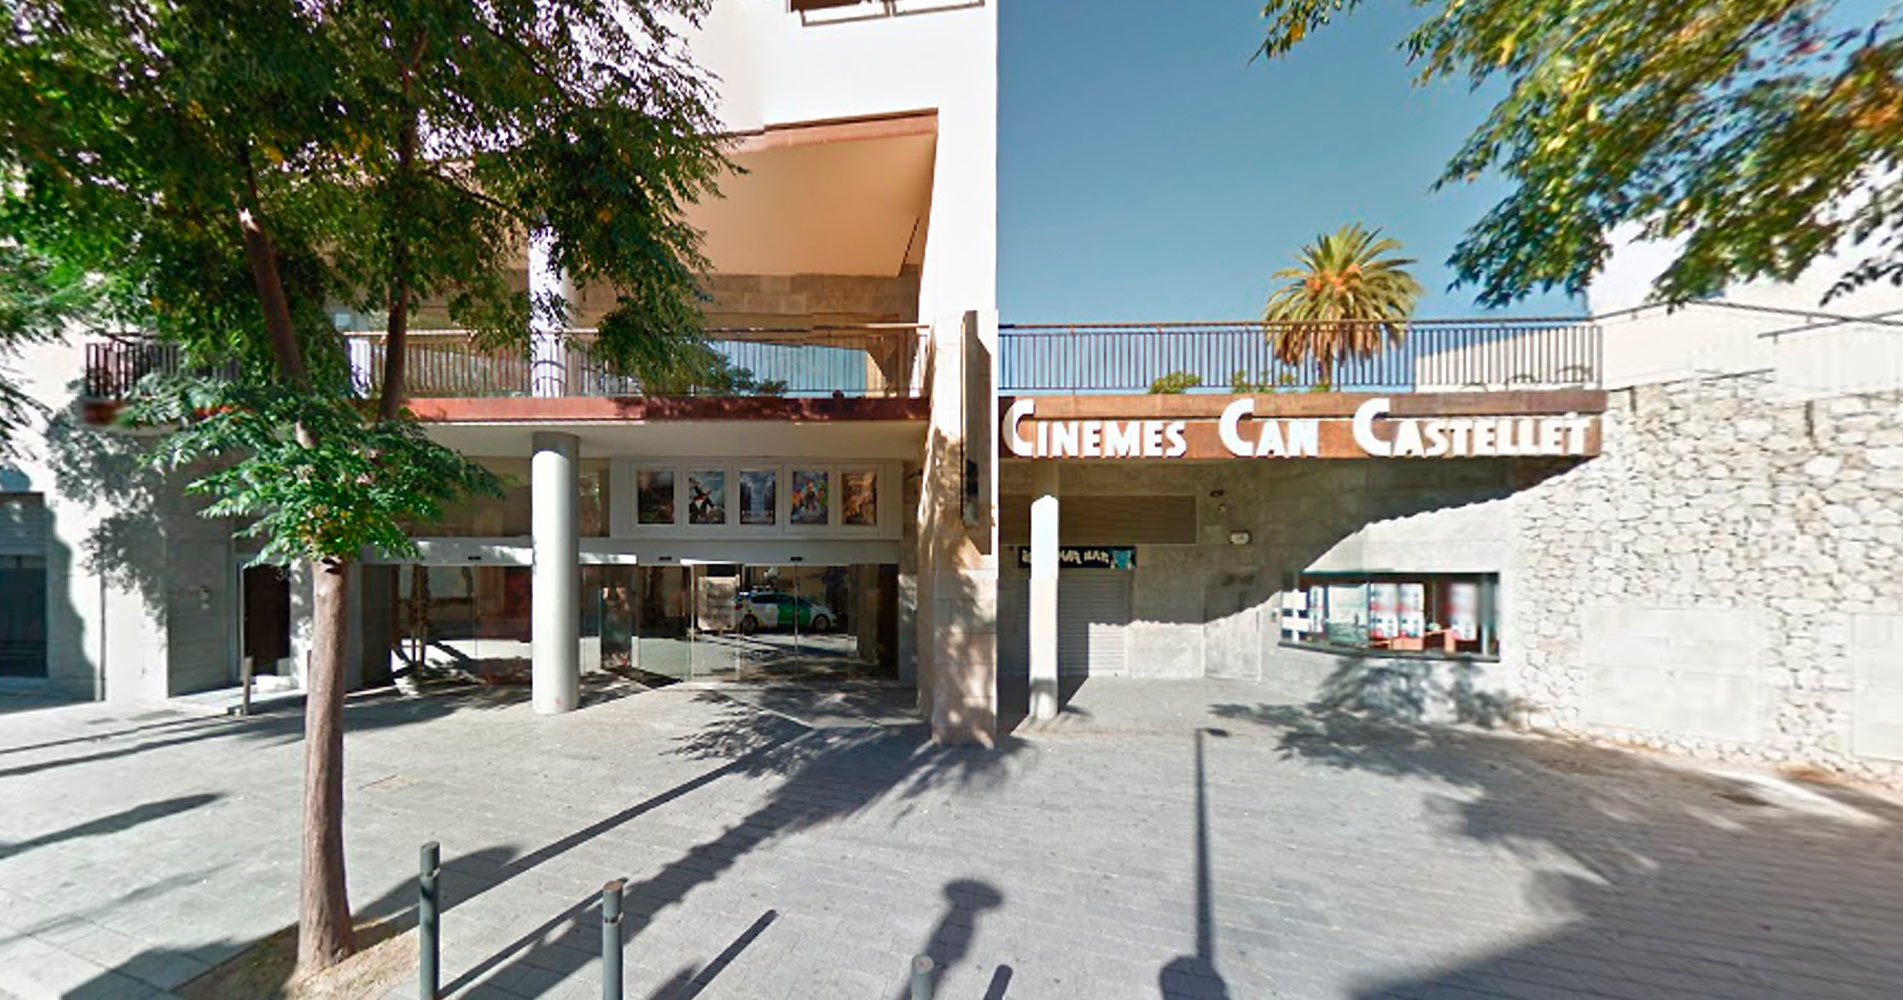 Cinemes-can-Castellet